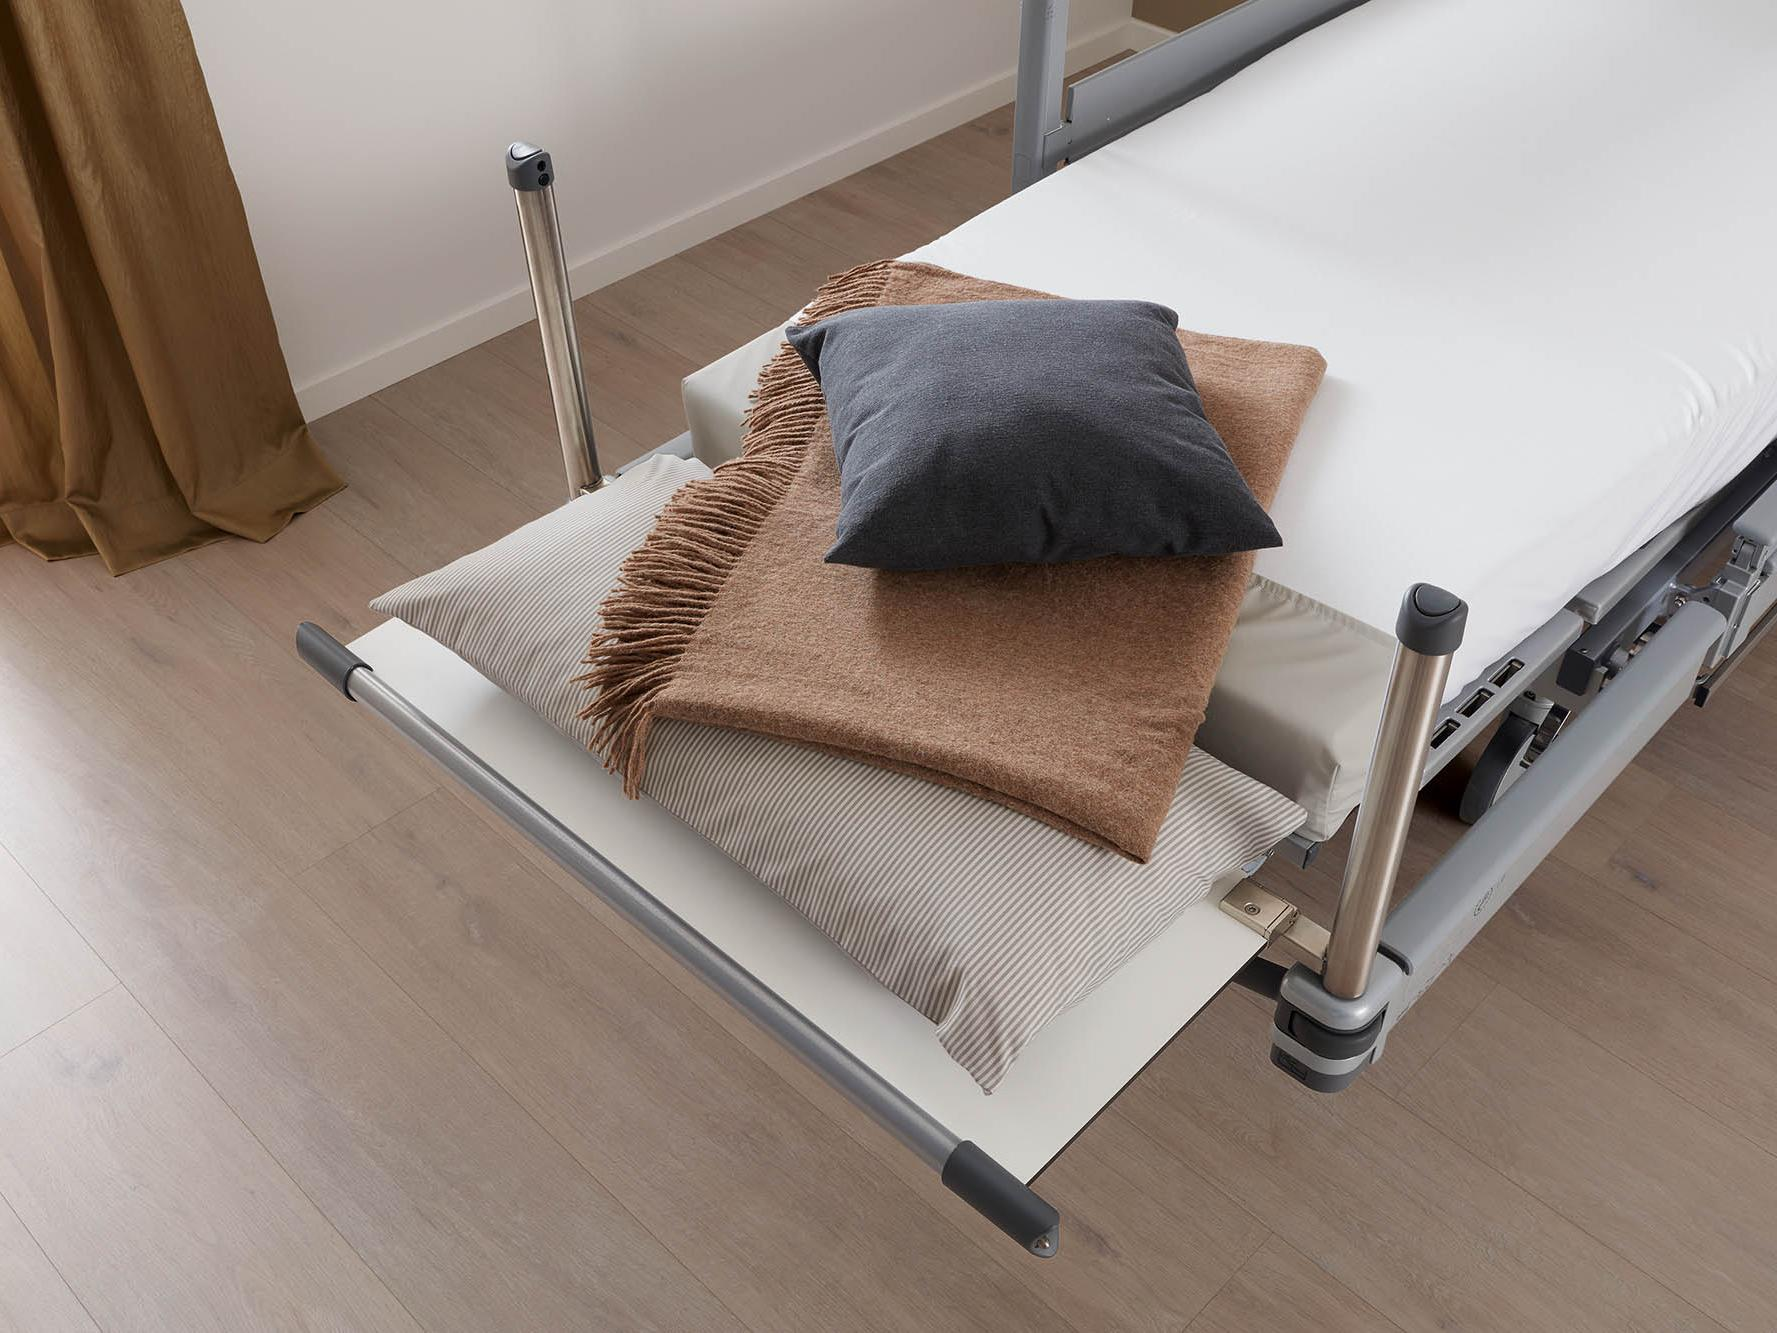 Footboard used as linen holder on the Vertica clinic mobilisation bed